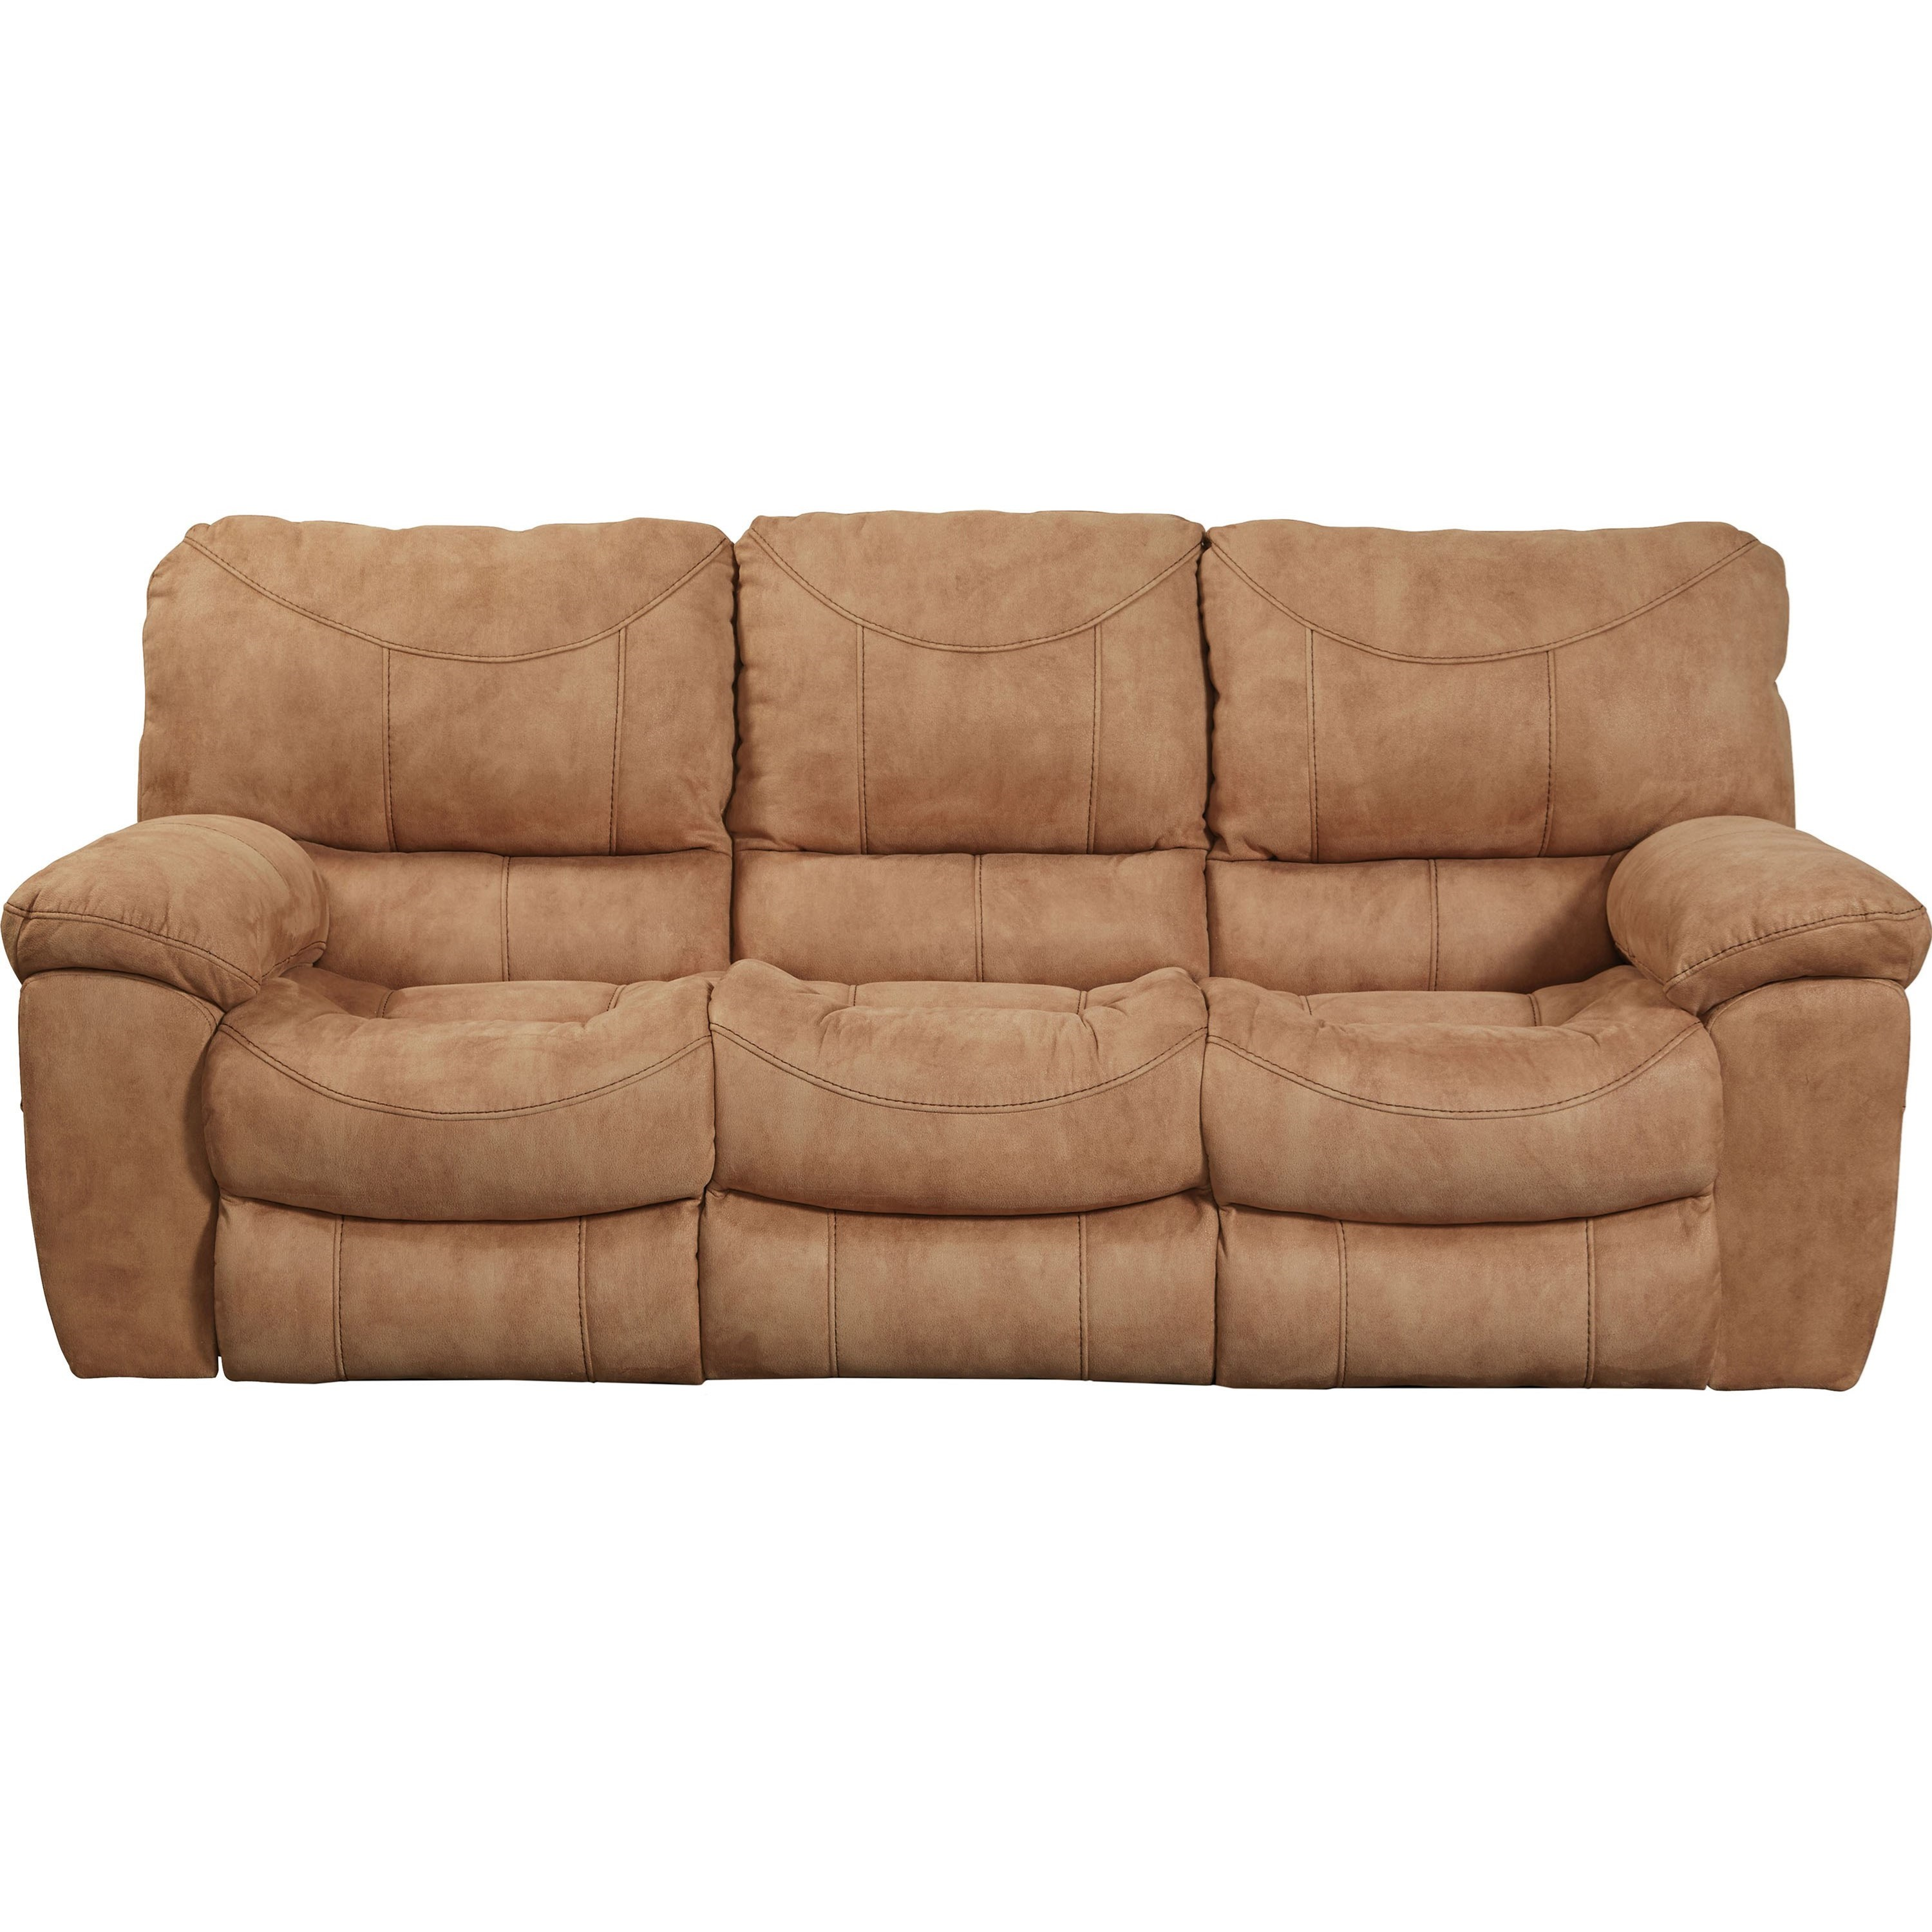 flat products and cup trim console reclining catnapper loveseat reyesreclining threshold with item width reyes height lay